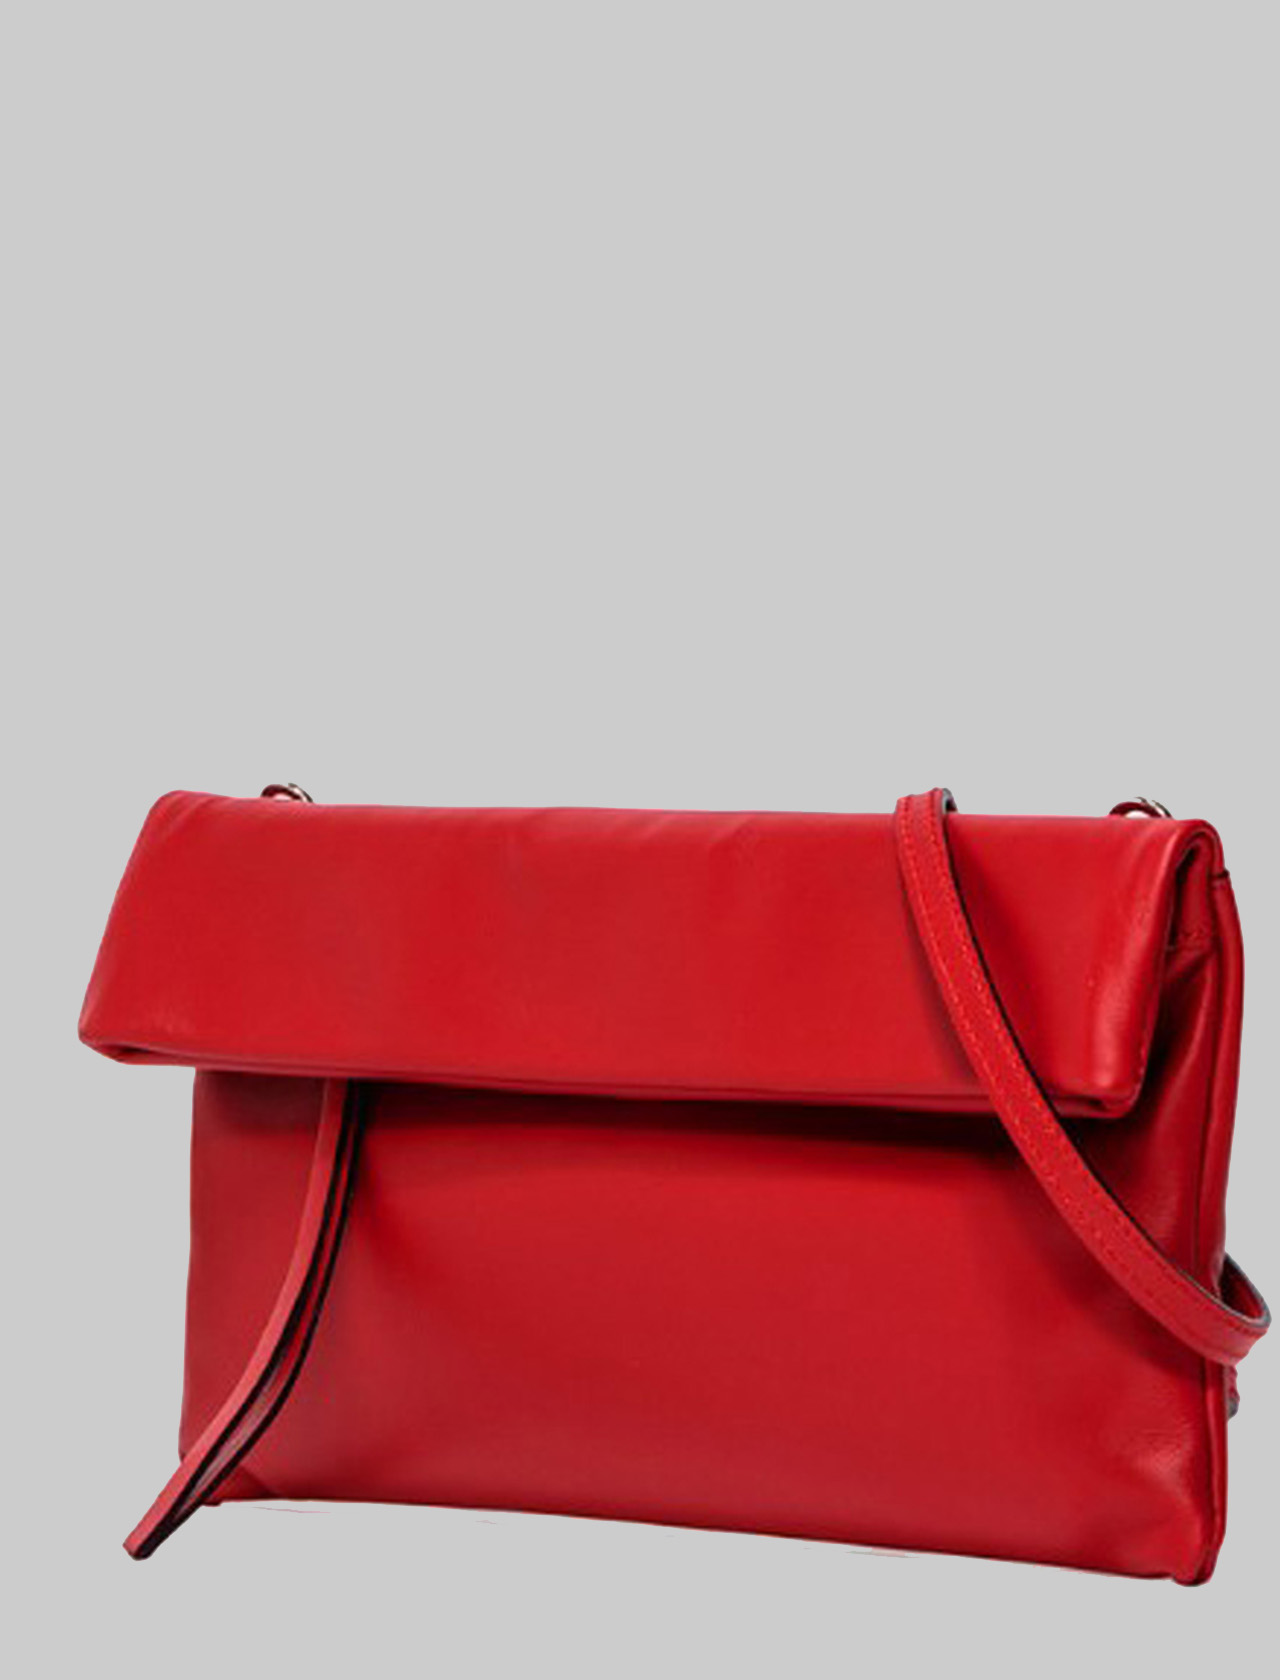 Cherry Women's Clutch Bag In Red Smooth Leather With Tone Removable Shoulder Strap Gianni Chiarini | Bags and backpacks | BS737511707